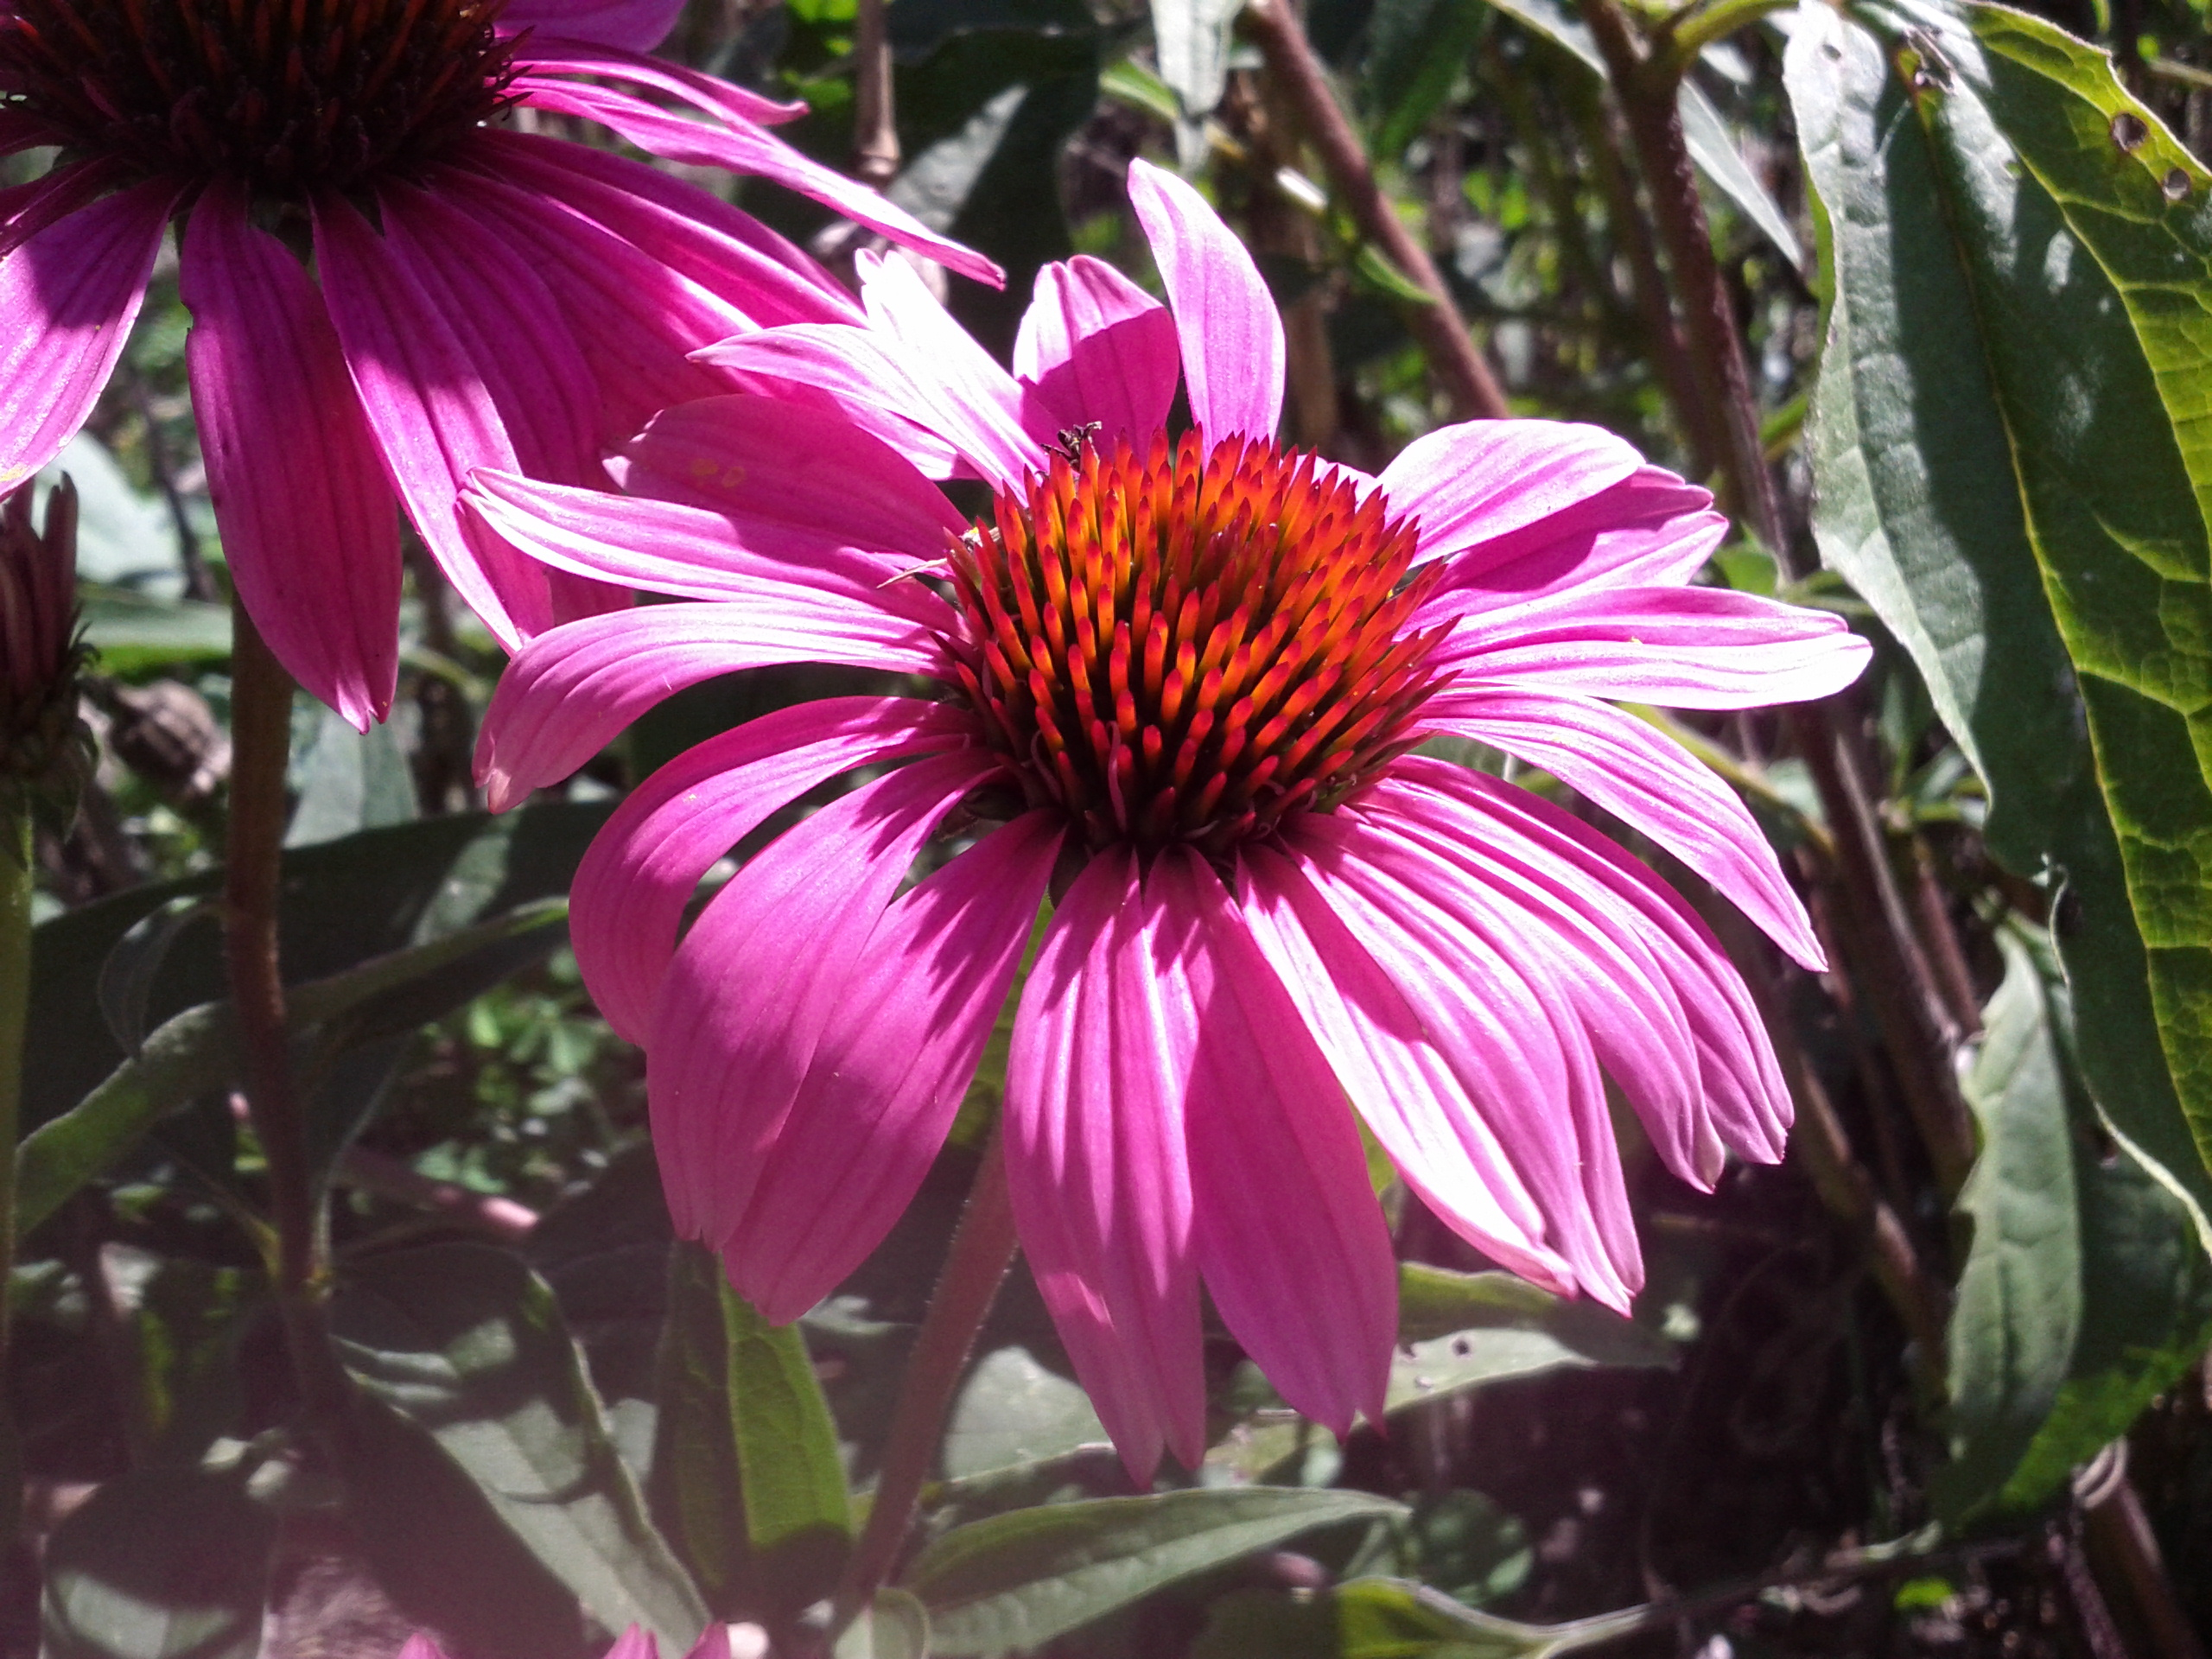 Echinacea tincture. Properties and application 65